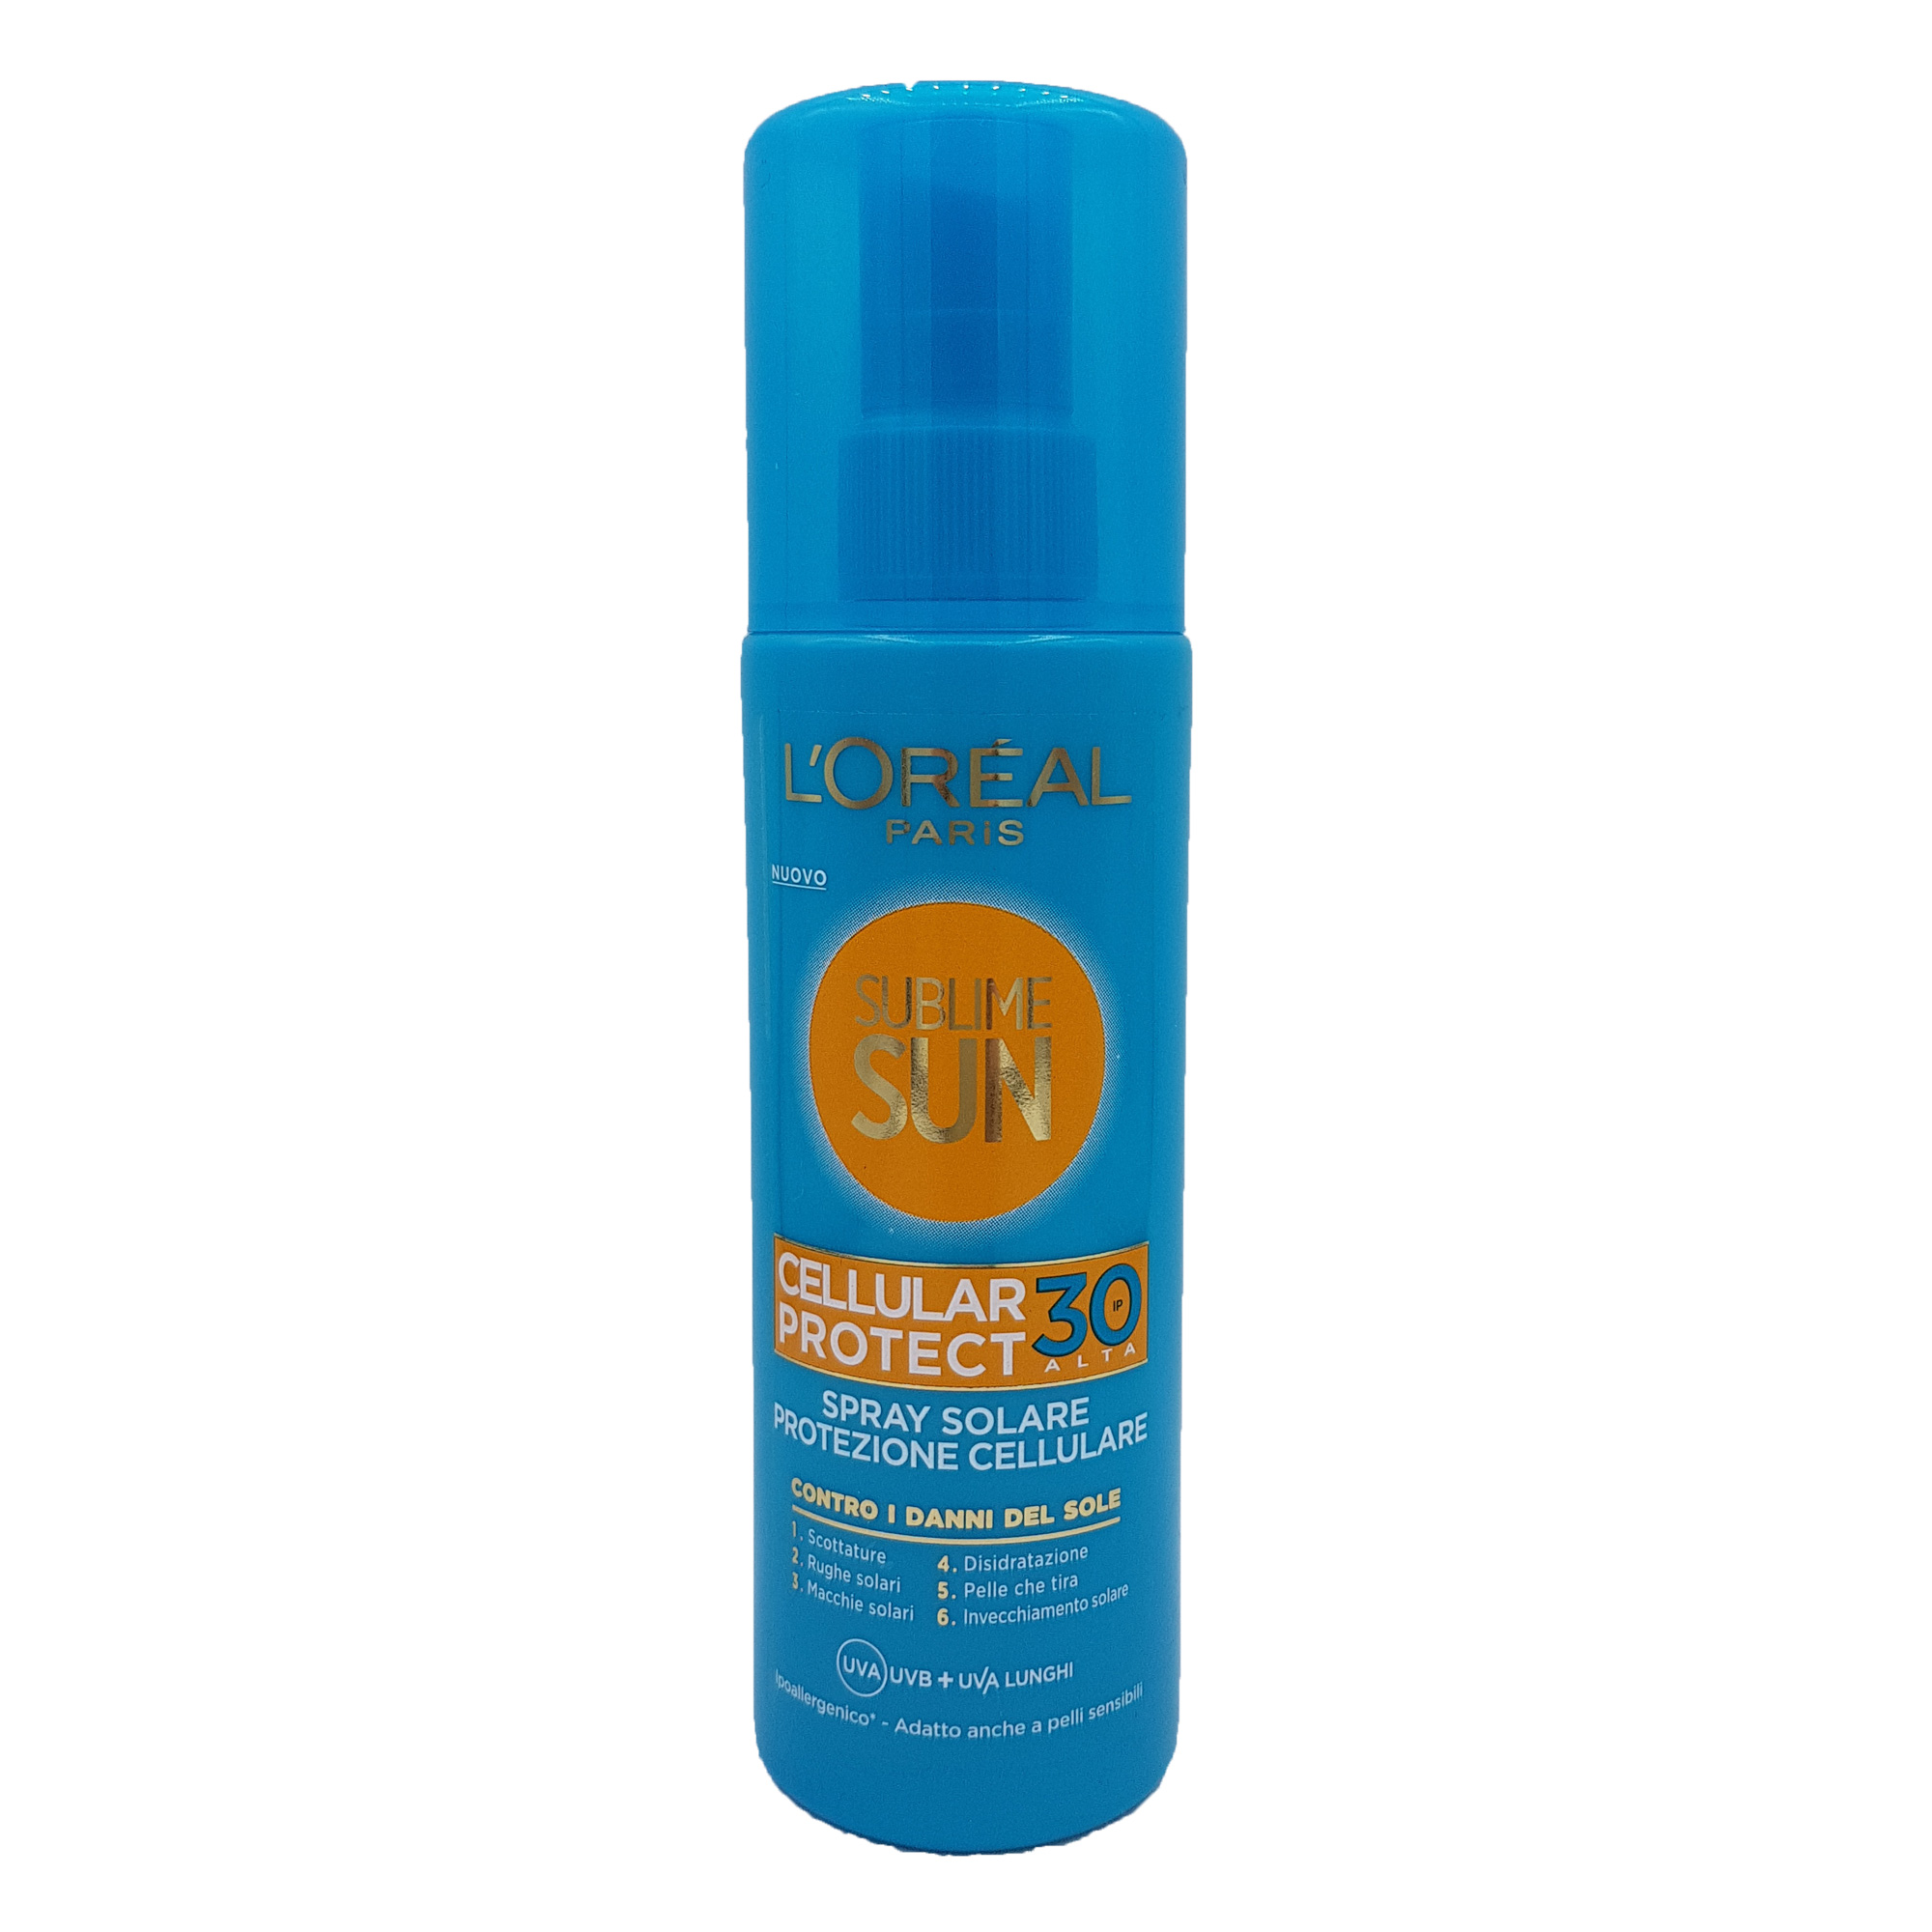 Spray solar L'oreal Cellular Protect SPF 30 200 ml